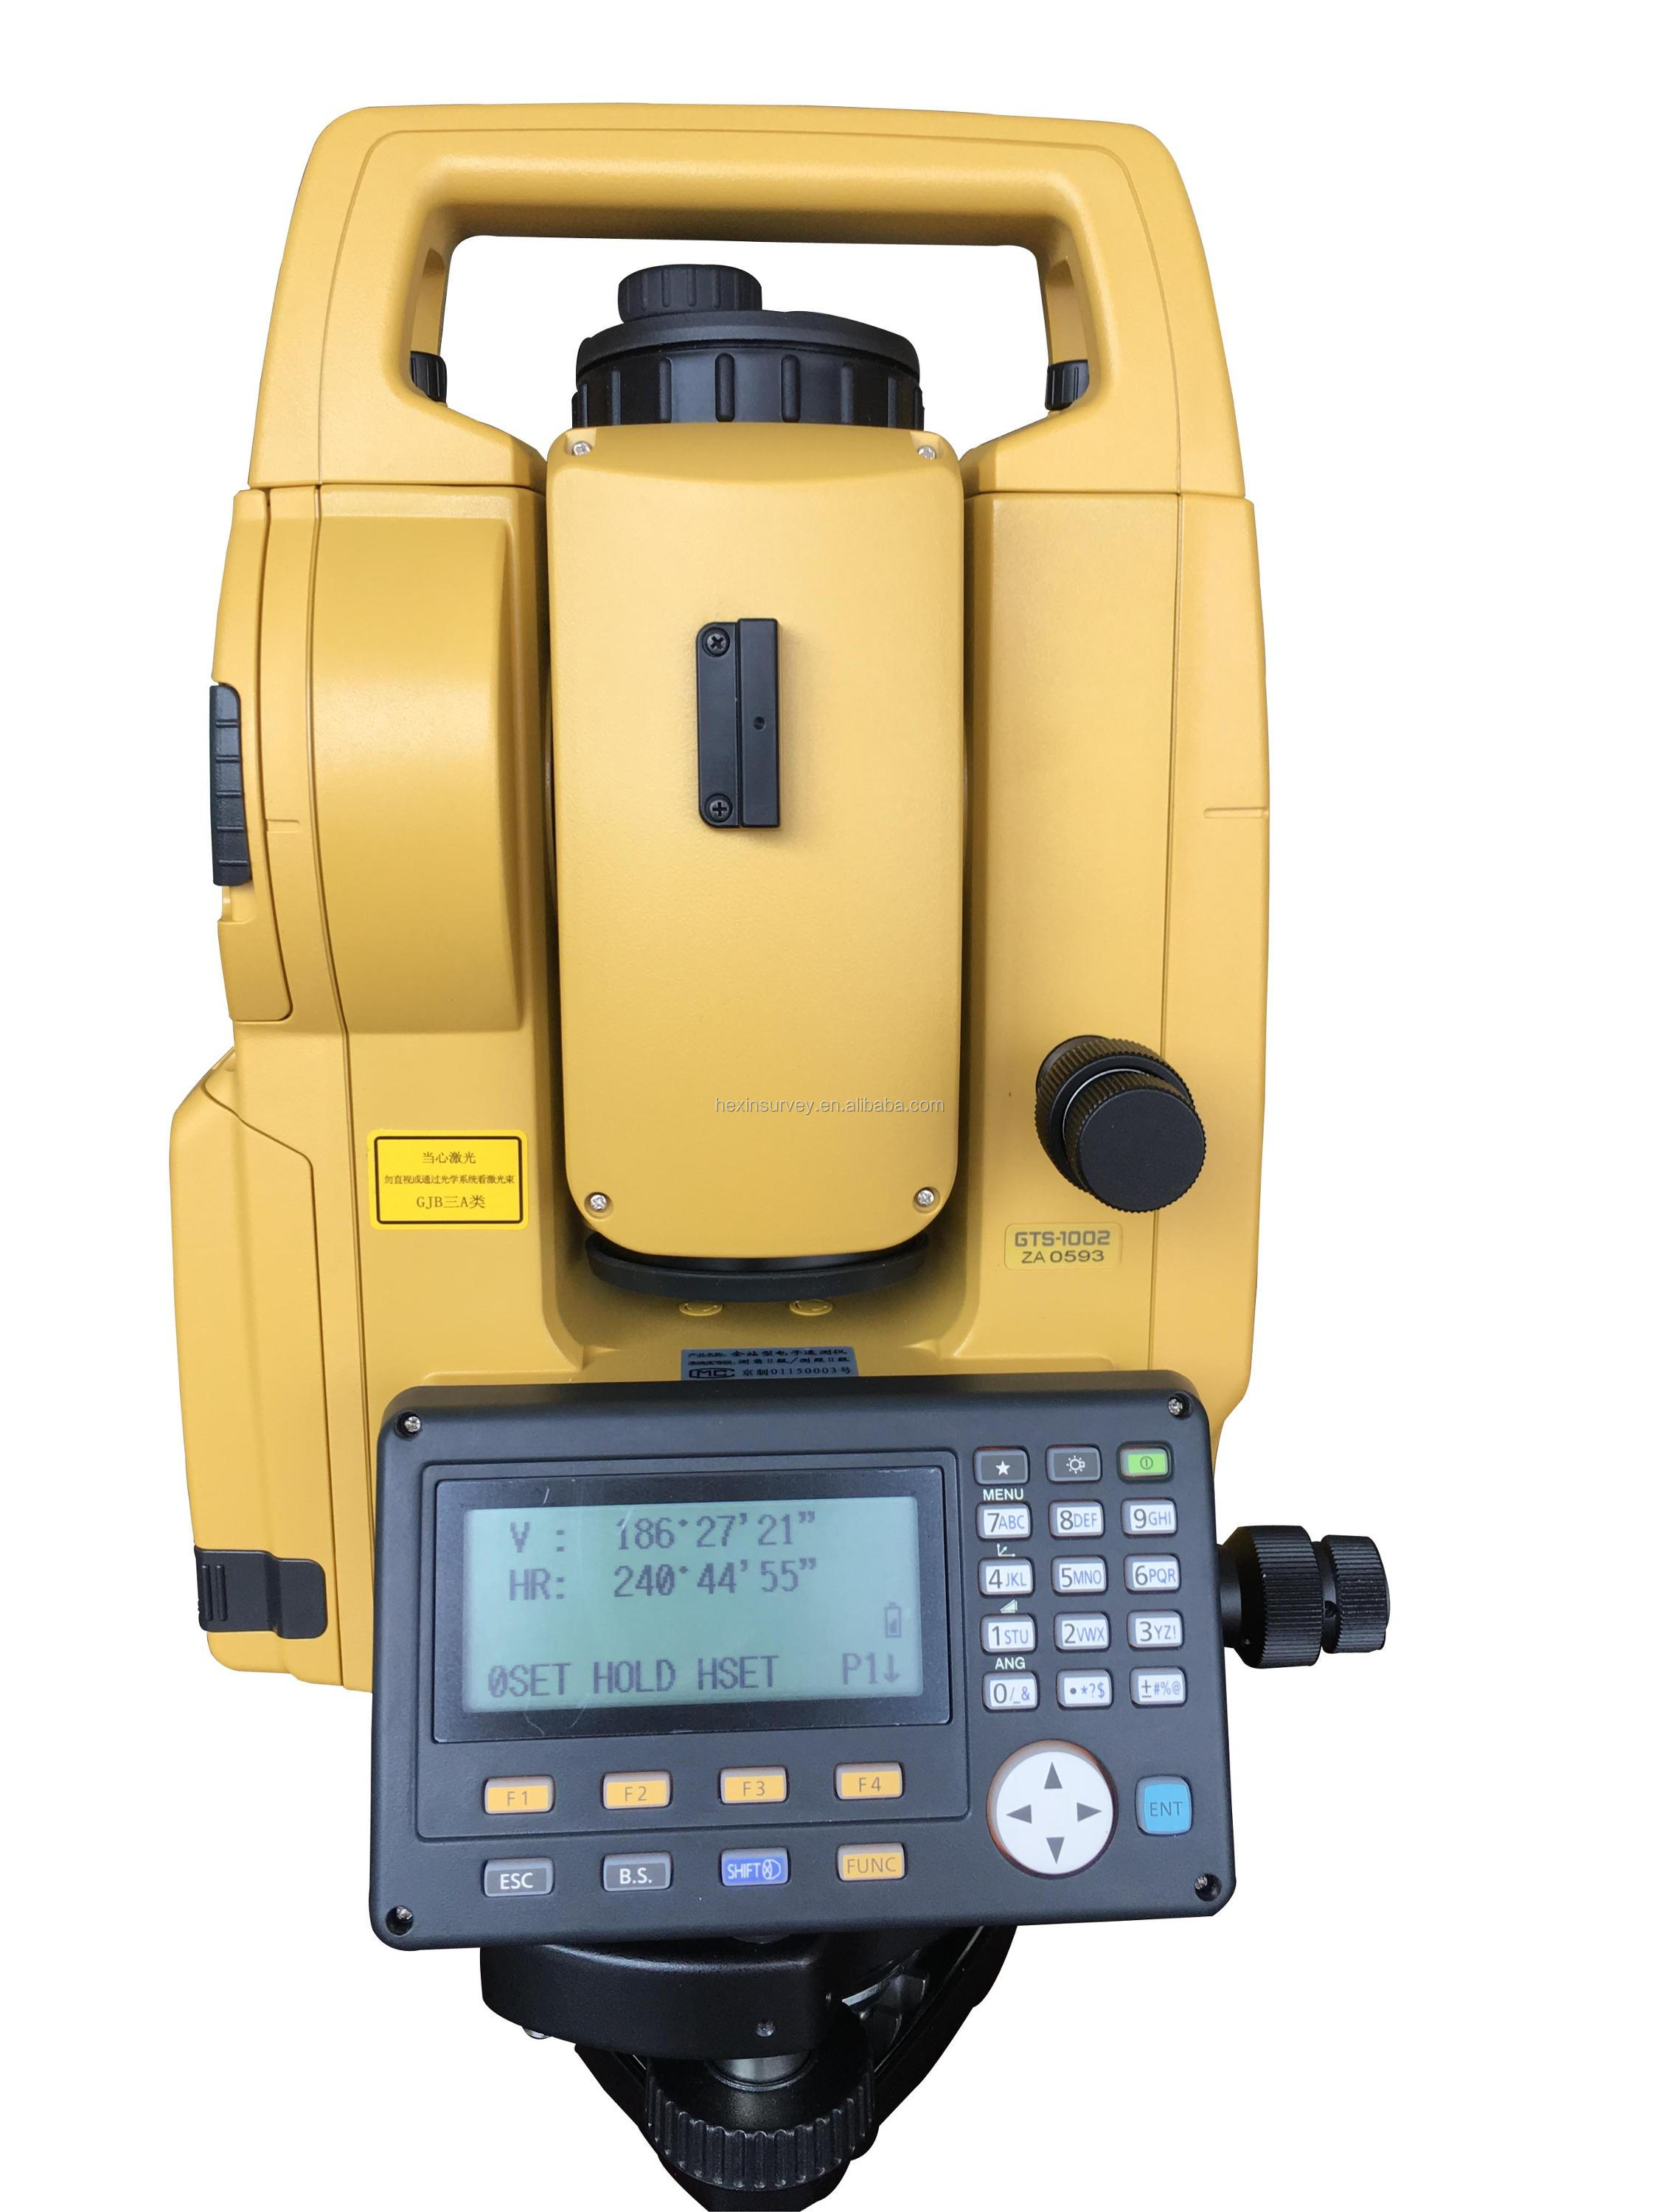 Topcon GTS 1002 Best Total Station USB Data Munication Total Station Price View Best Total Station Topcon Product Details From Shanghai Hexin